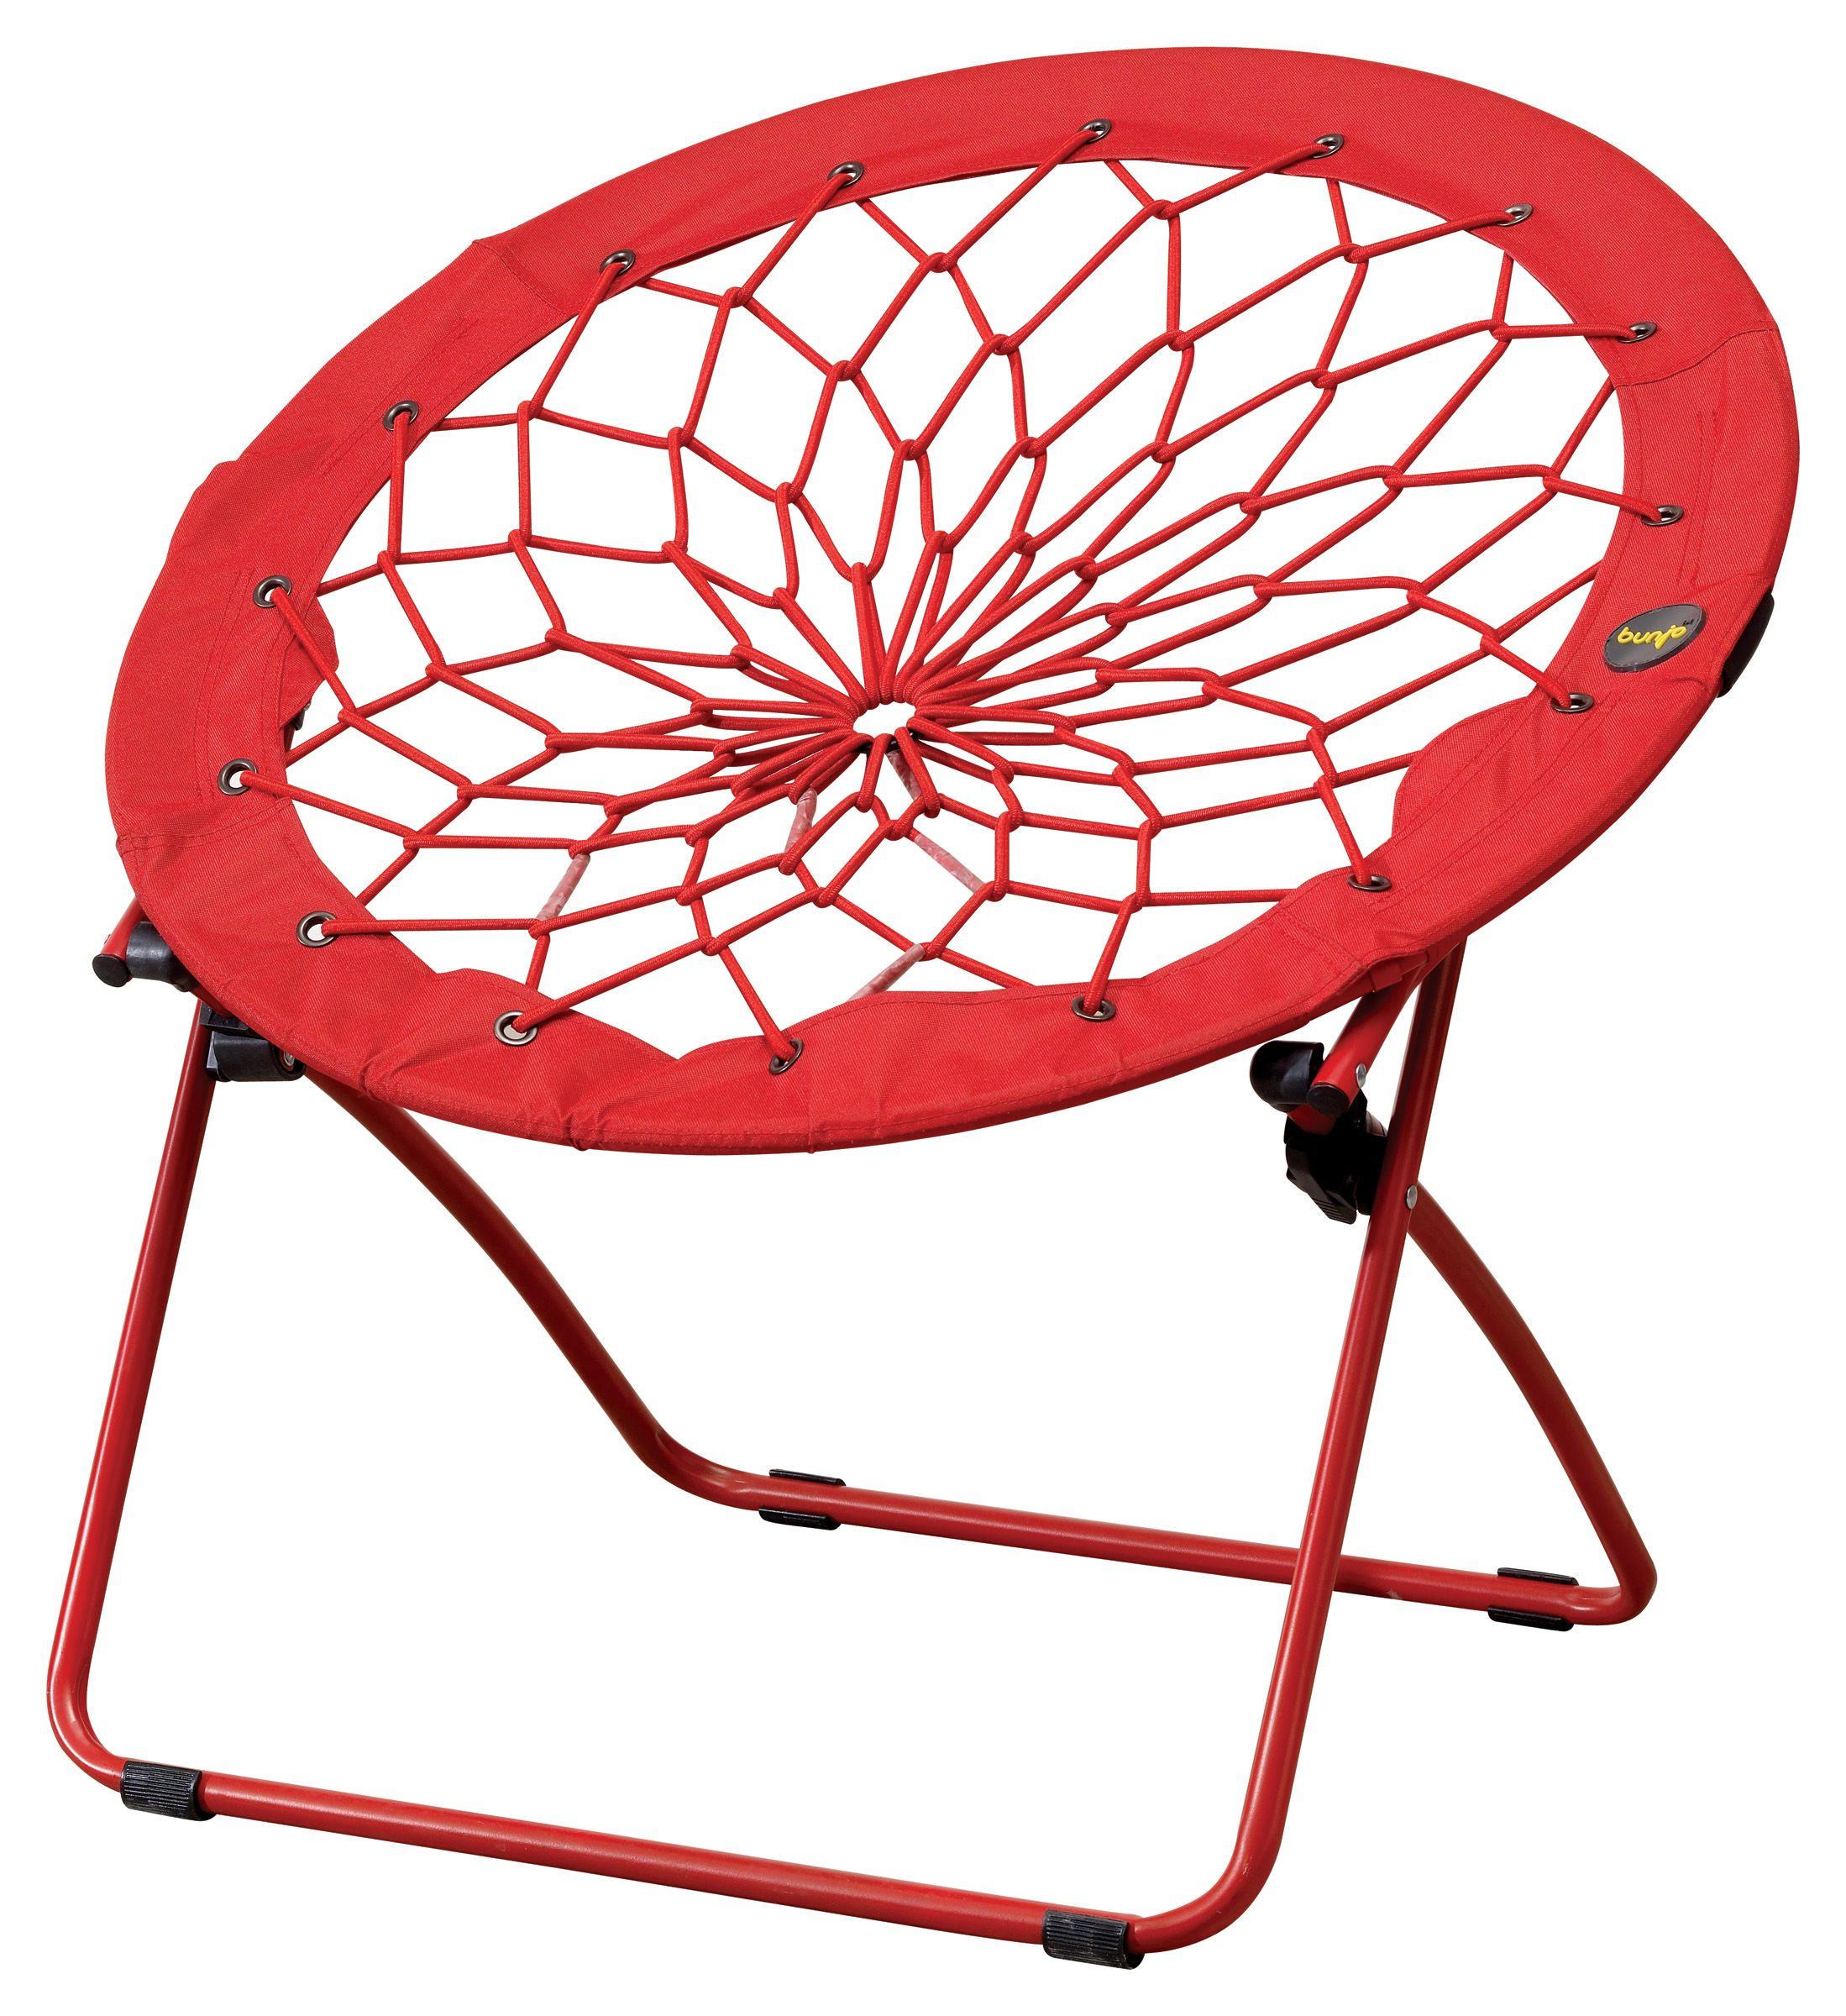 Superior I Am Buying This Tomorrow:) It Is Sooo Comfortable, And Fun Fun Fun As  Well! Home Hardware   Red Bunjo Chair Design Ideas